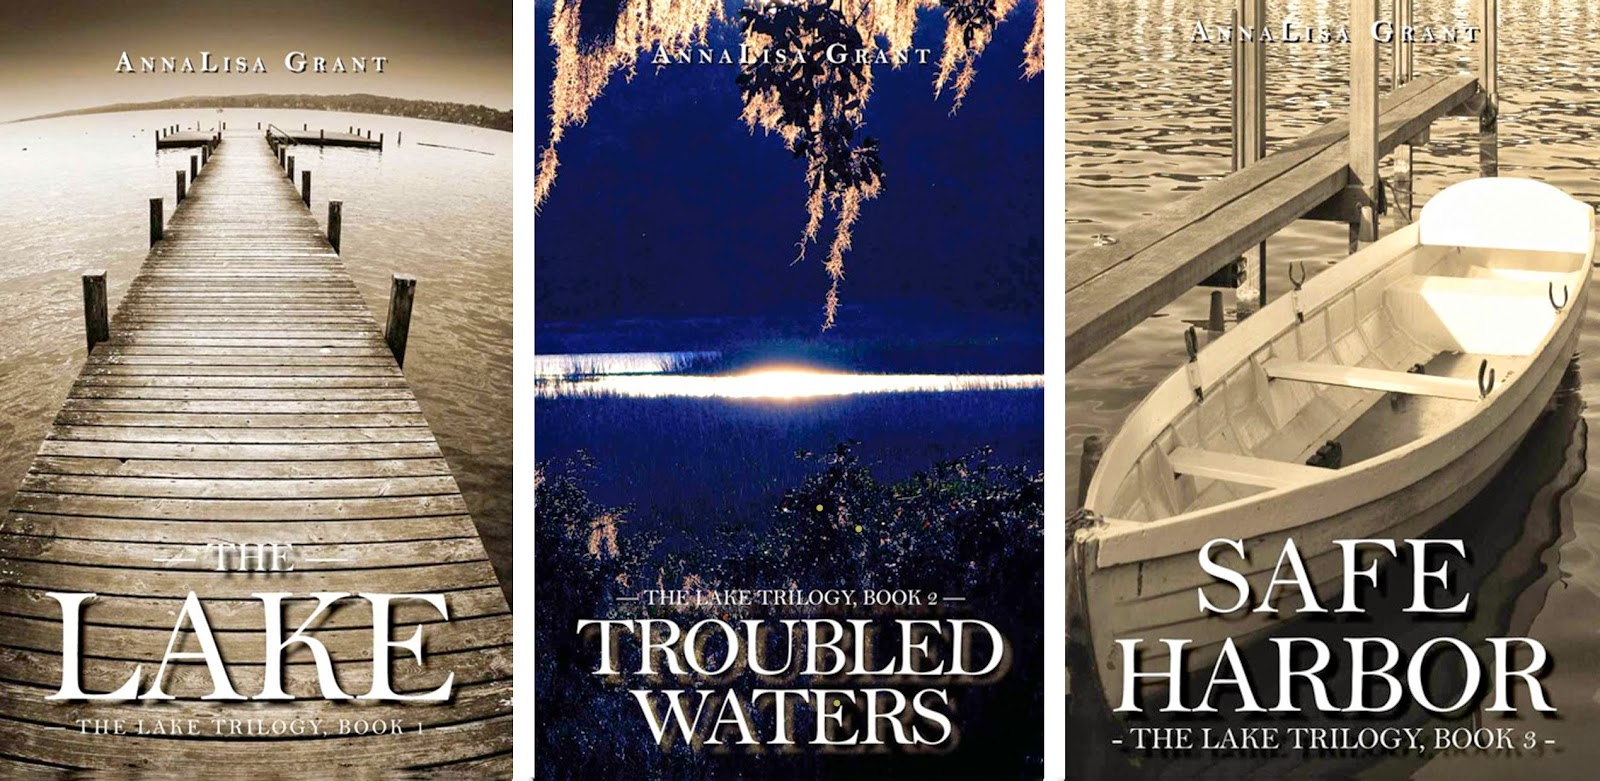 http://www.amazon.com/s/ref=nb_sb_noss_2?url=search-alias%3Ddigital-text&field-keywords=the+lake+trilogy&rh=n%3A133140011%2Ck%3Athe+lake+trilogy&ajr=0